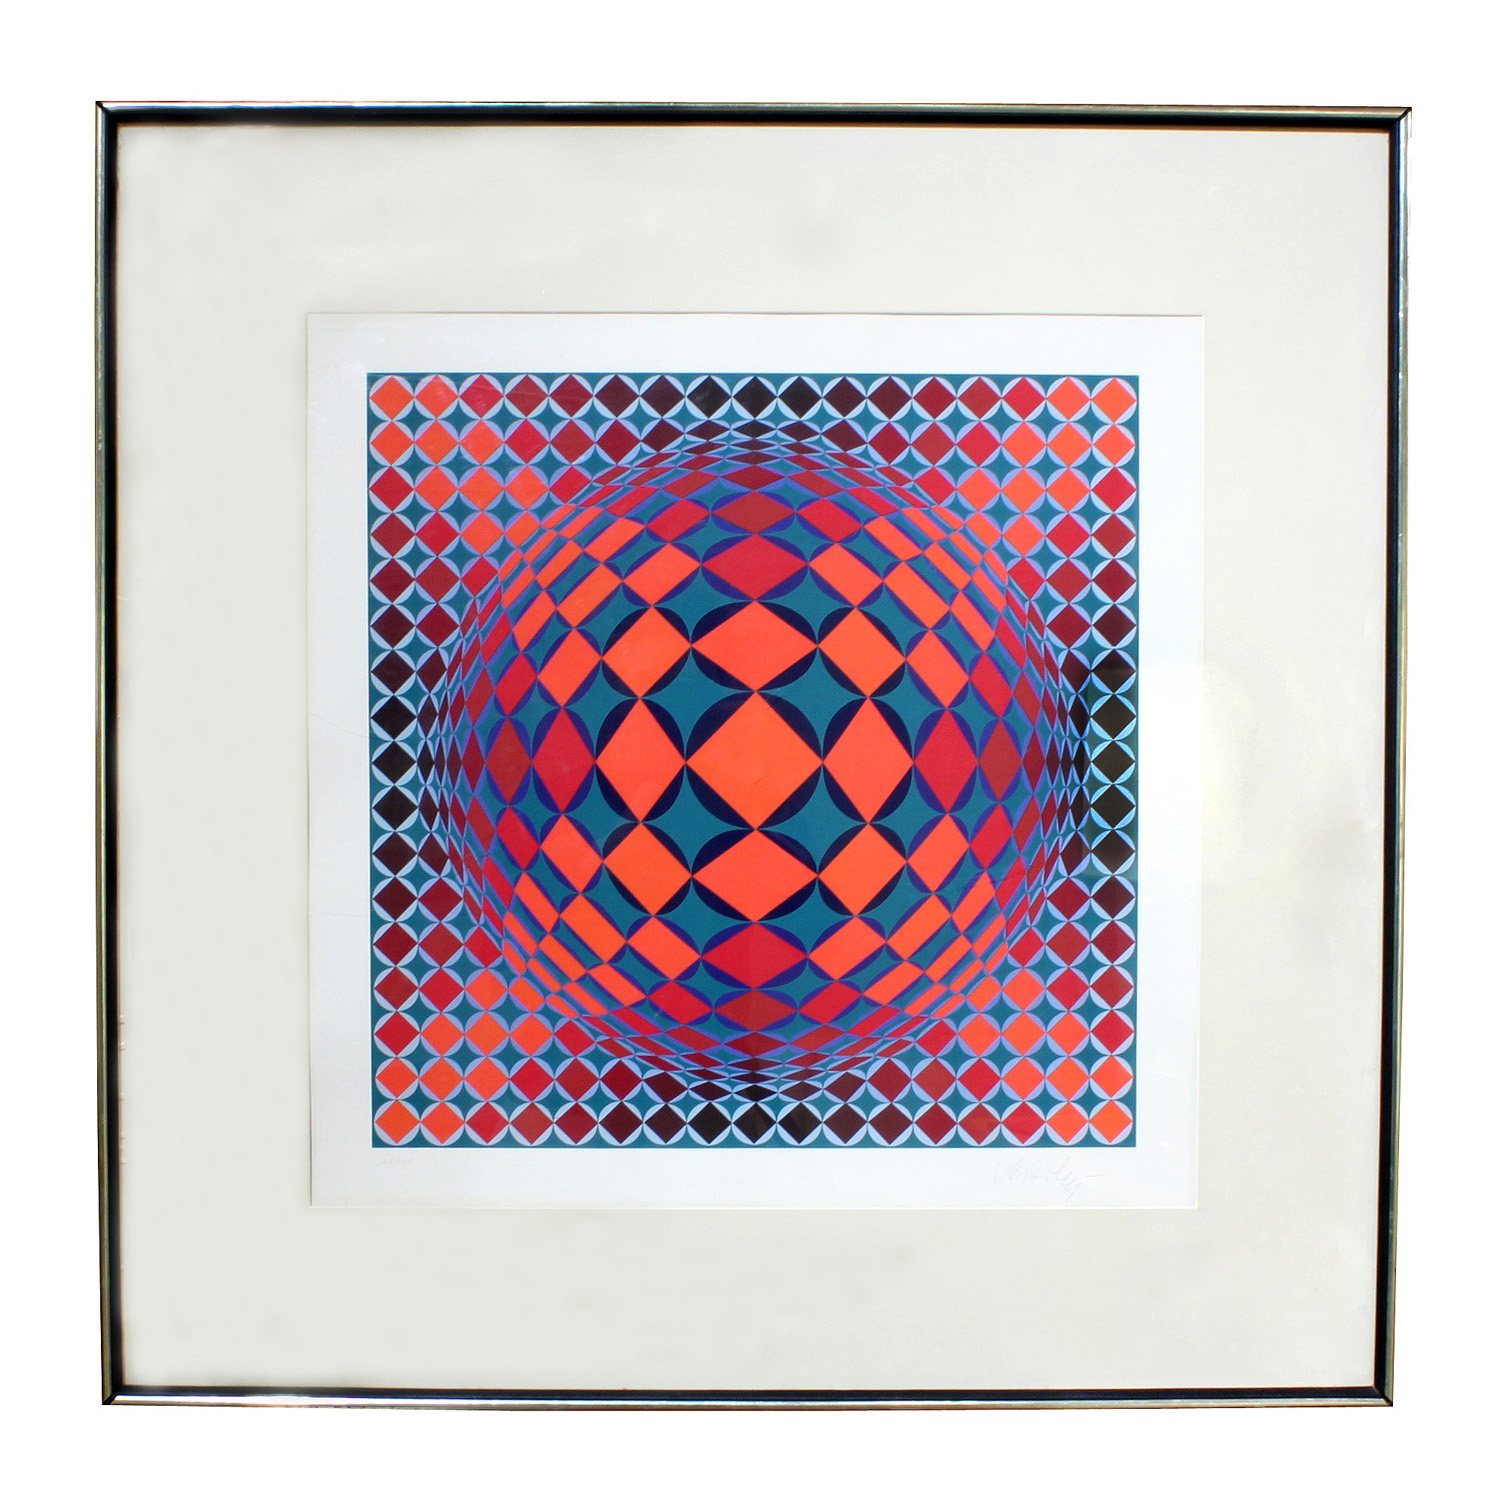 Vasarely 25 litho colorful geom painting59 hires main.jpg